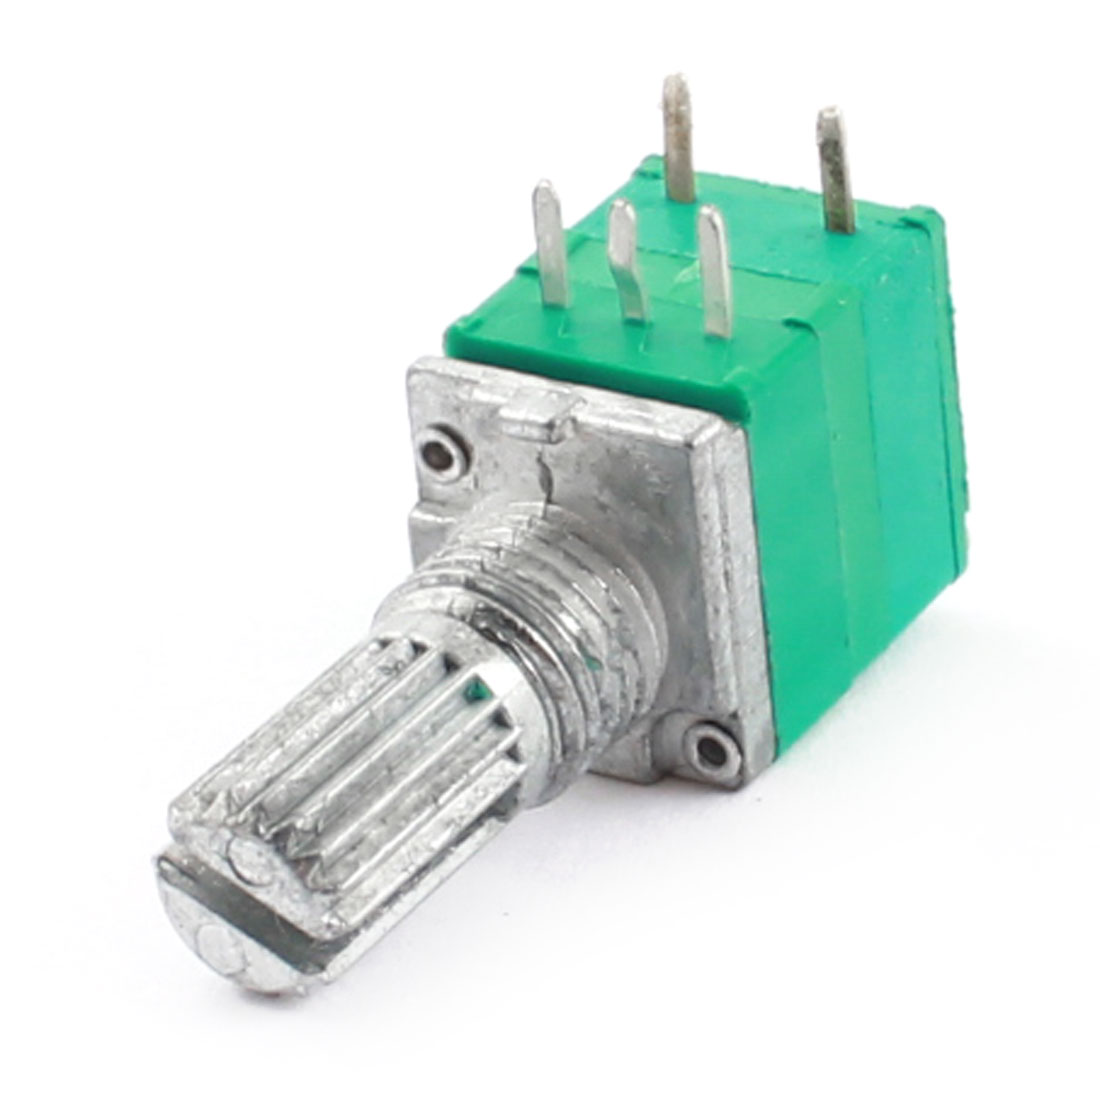 B50K 50K Ohm 7mm Thread 6mm Dia Knurled Shaft 5 Pin Green Adjustable Rotary Taper Potentiometer Switch